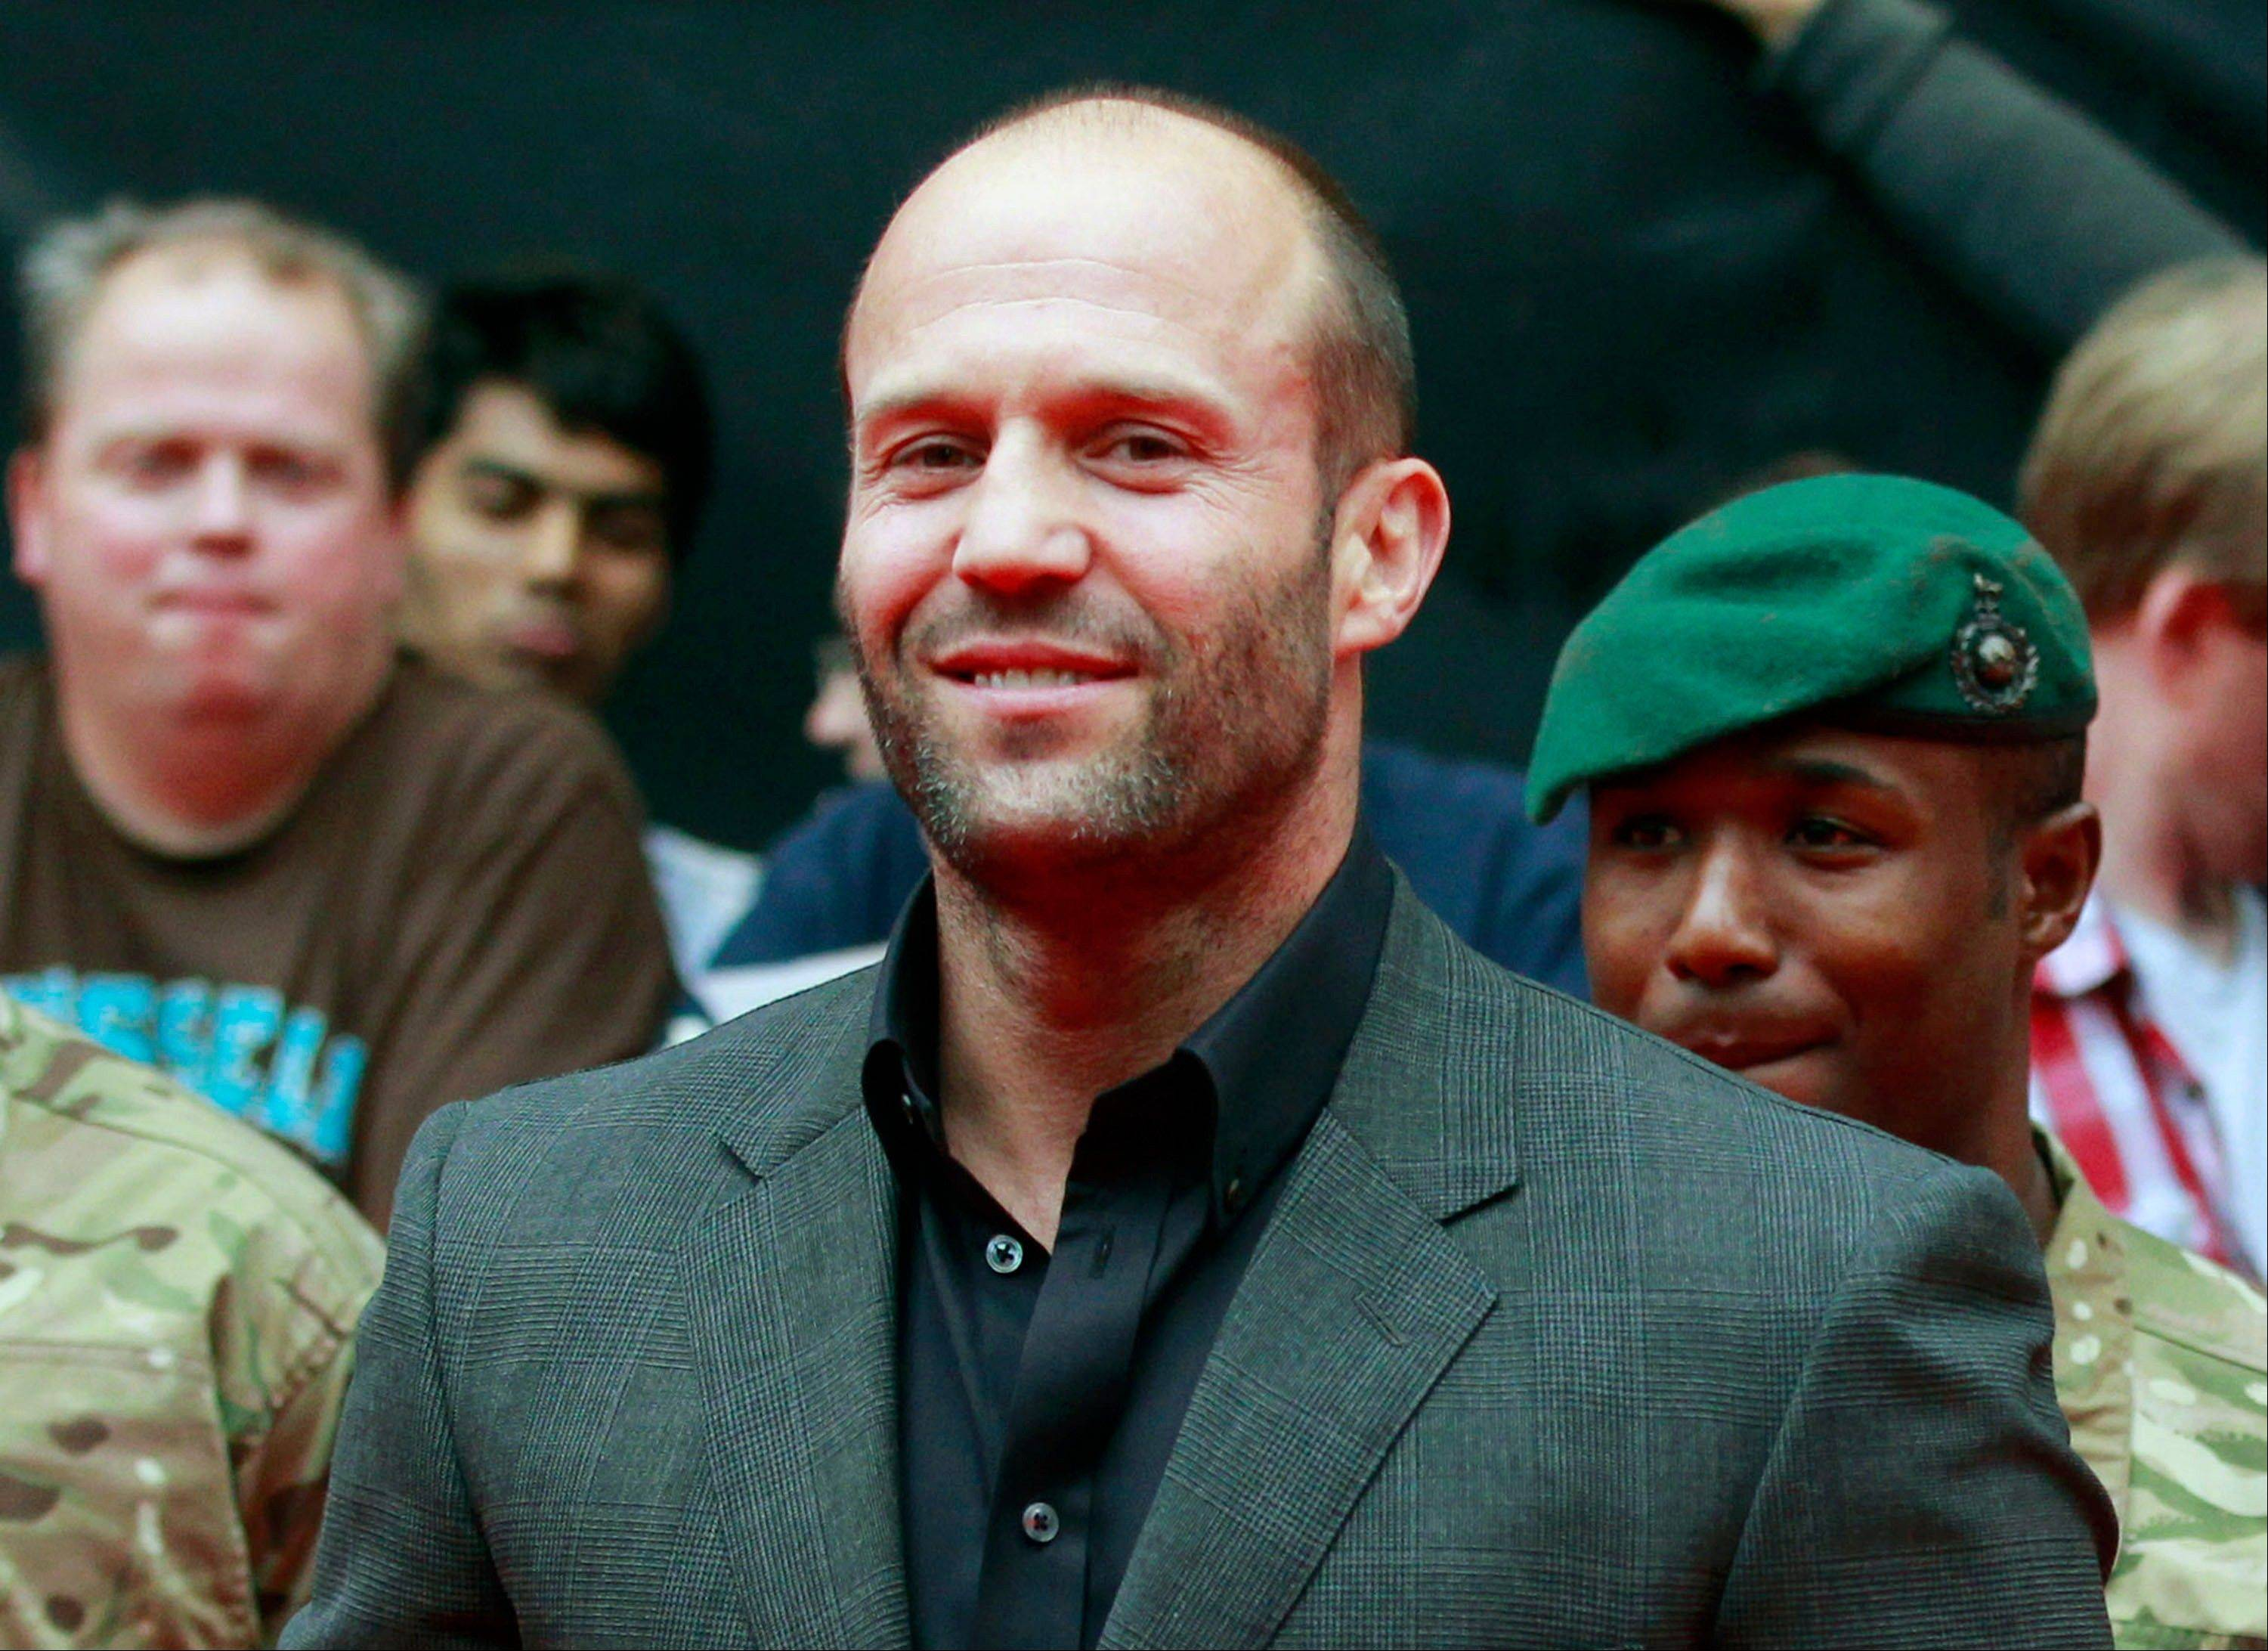 In Jason Statham�s latest film, �Redemption,� the actor turns it up a notch, playing a homeless soldier on the streets of London.